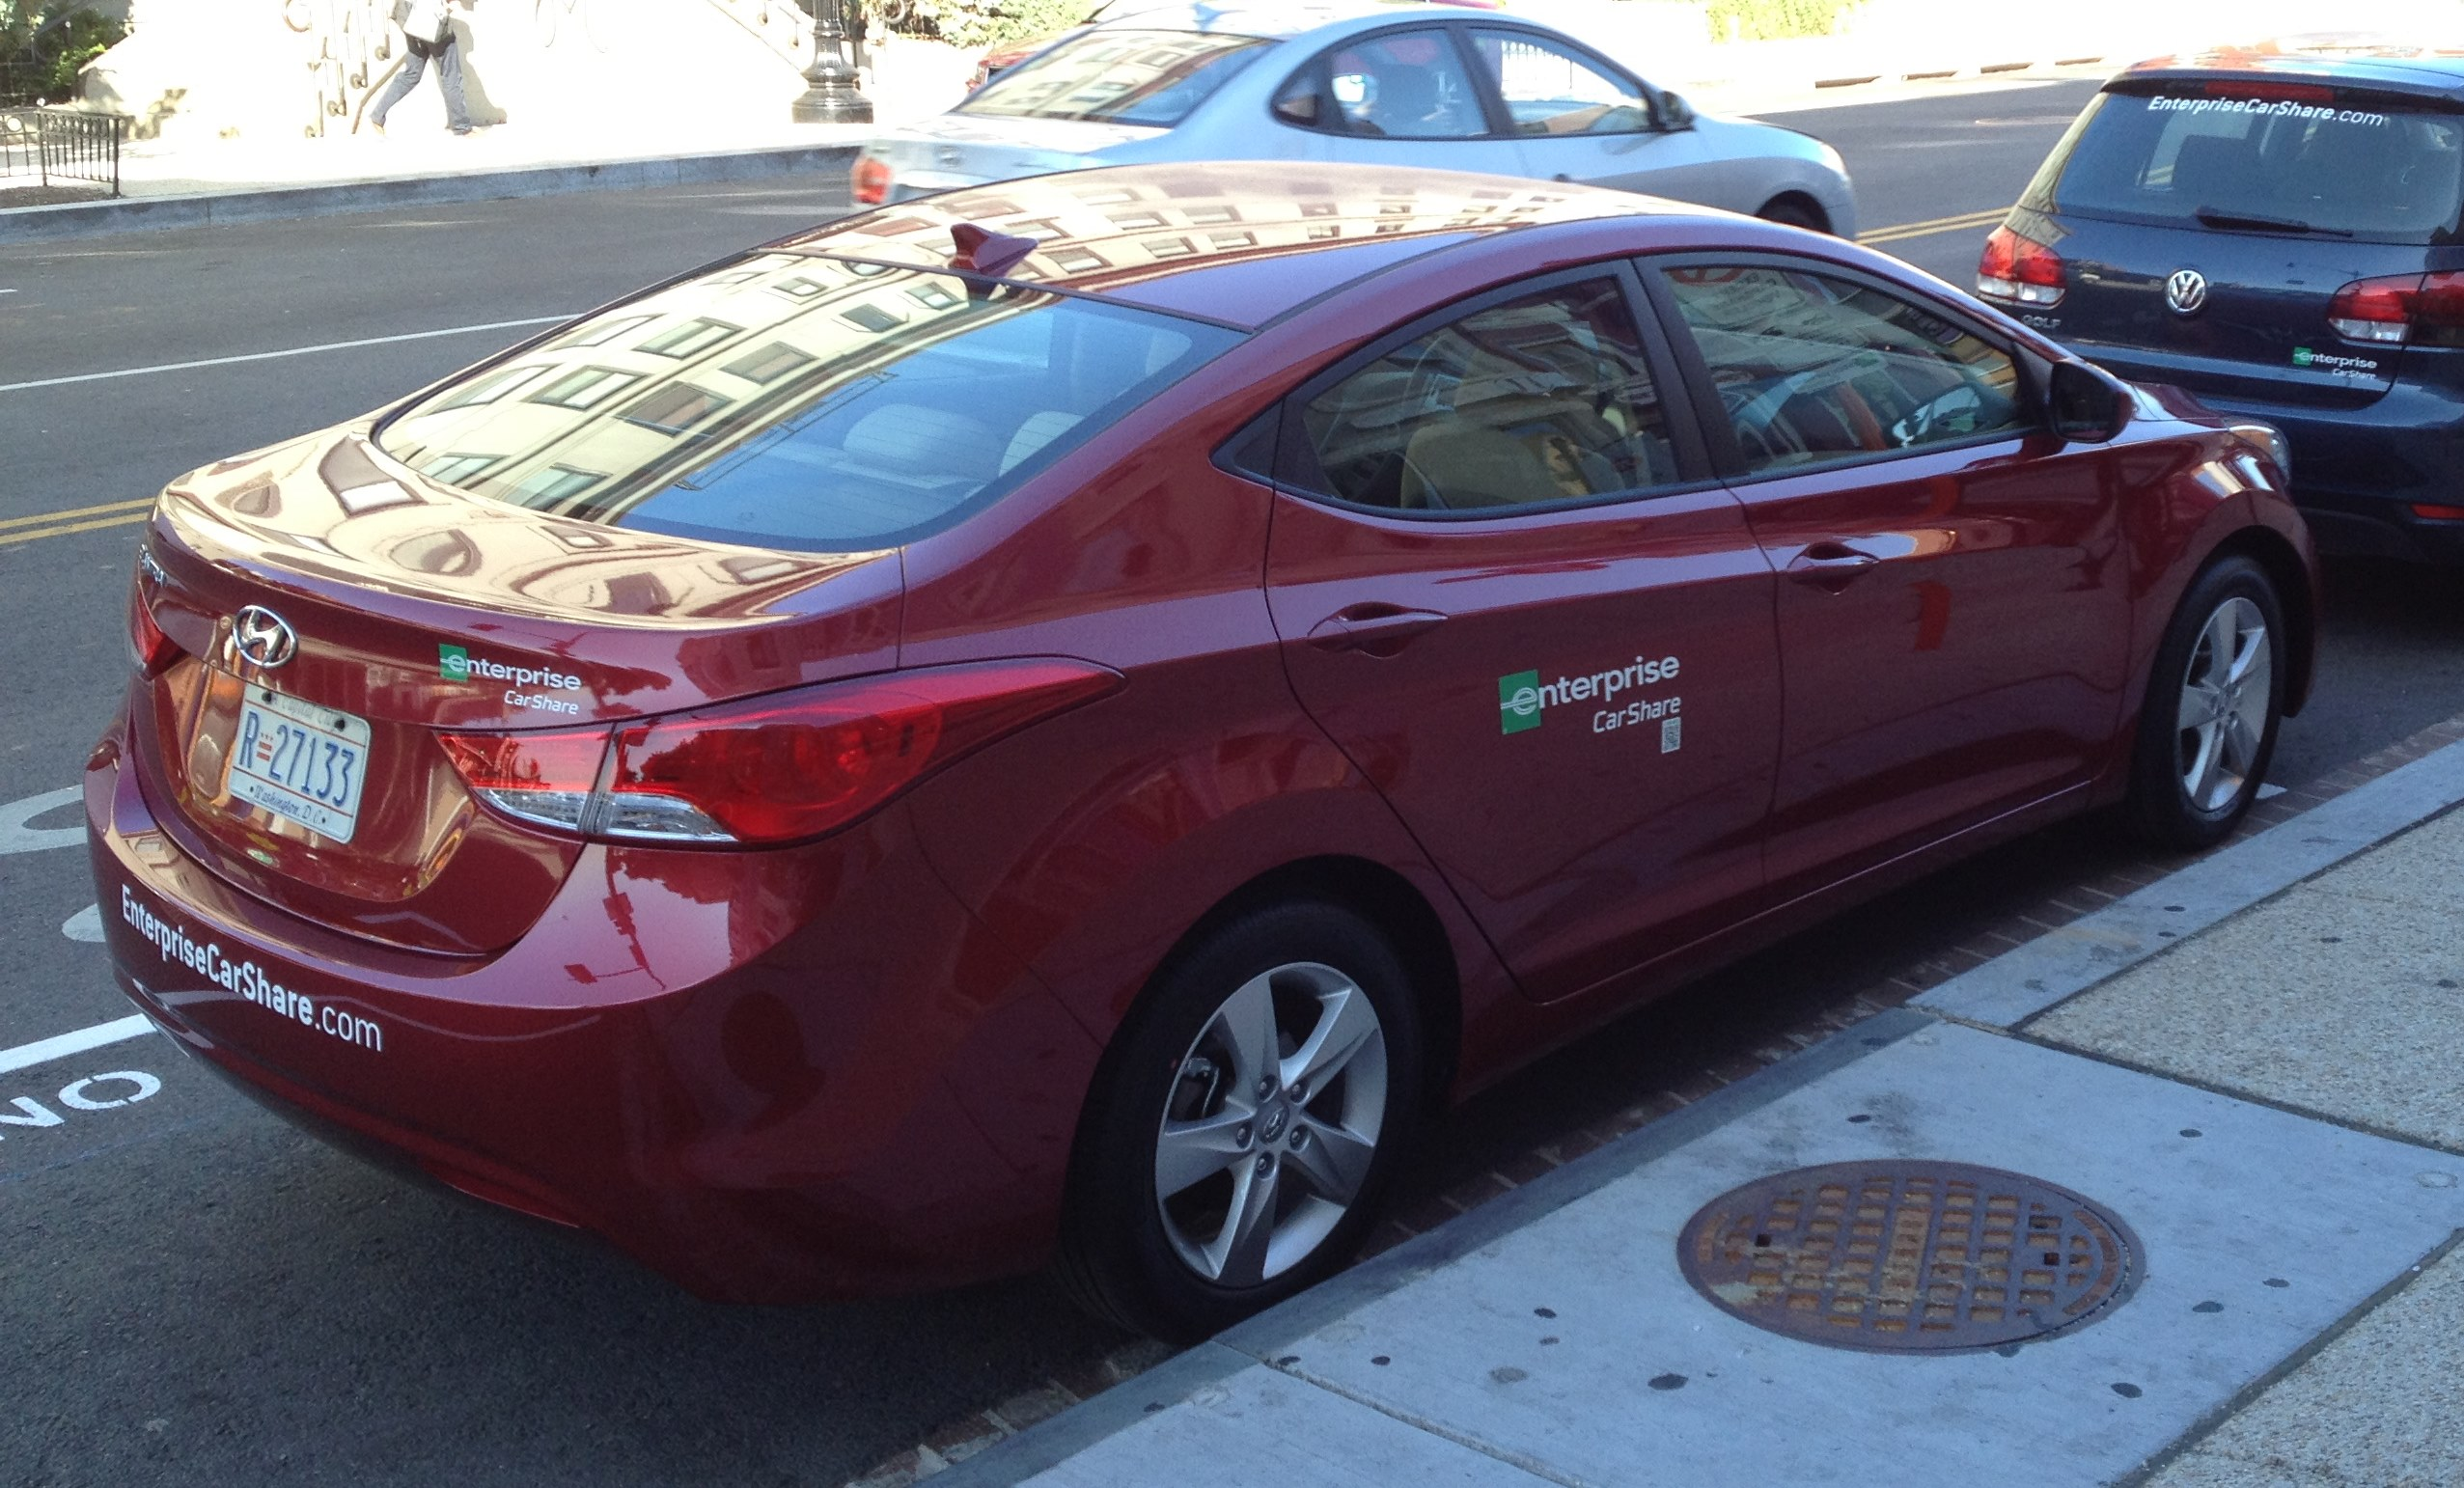 Enterprise Rental Car West Los Angeles On Pico Blvd